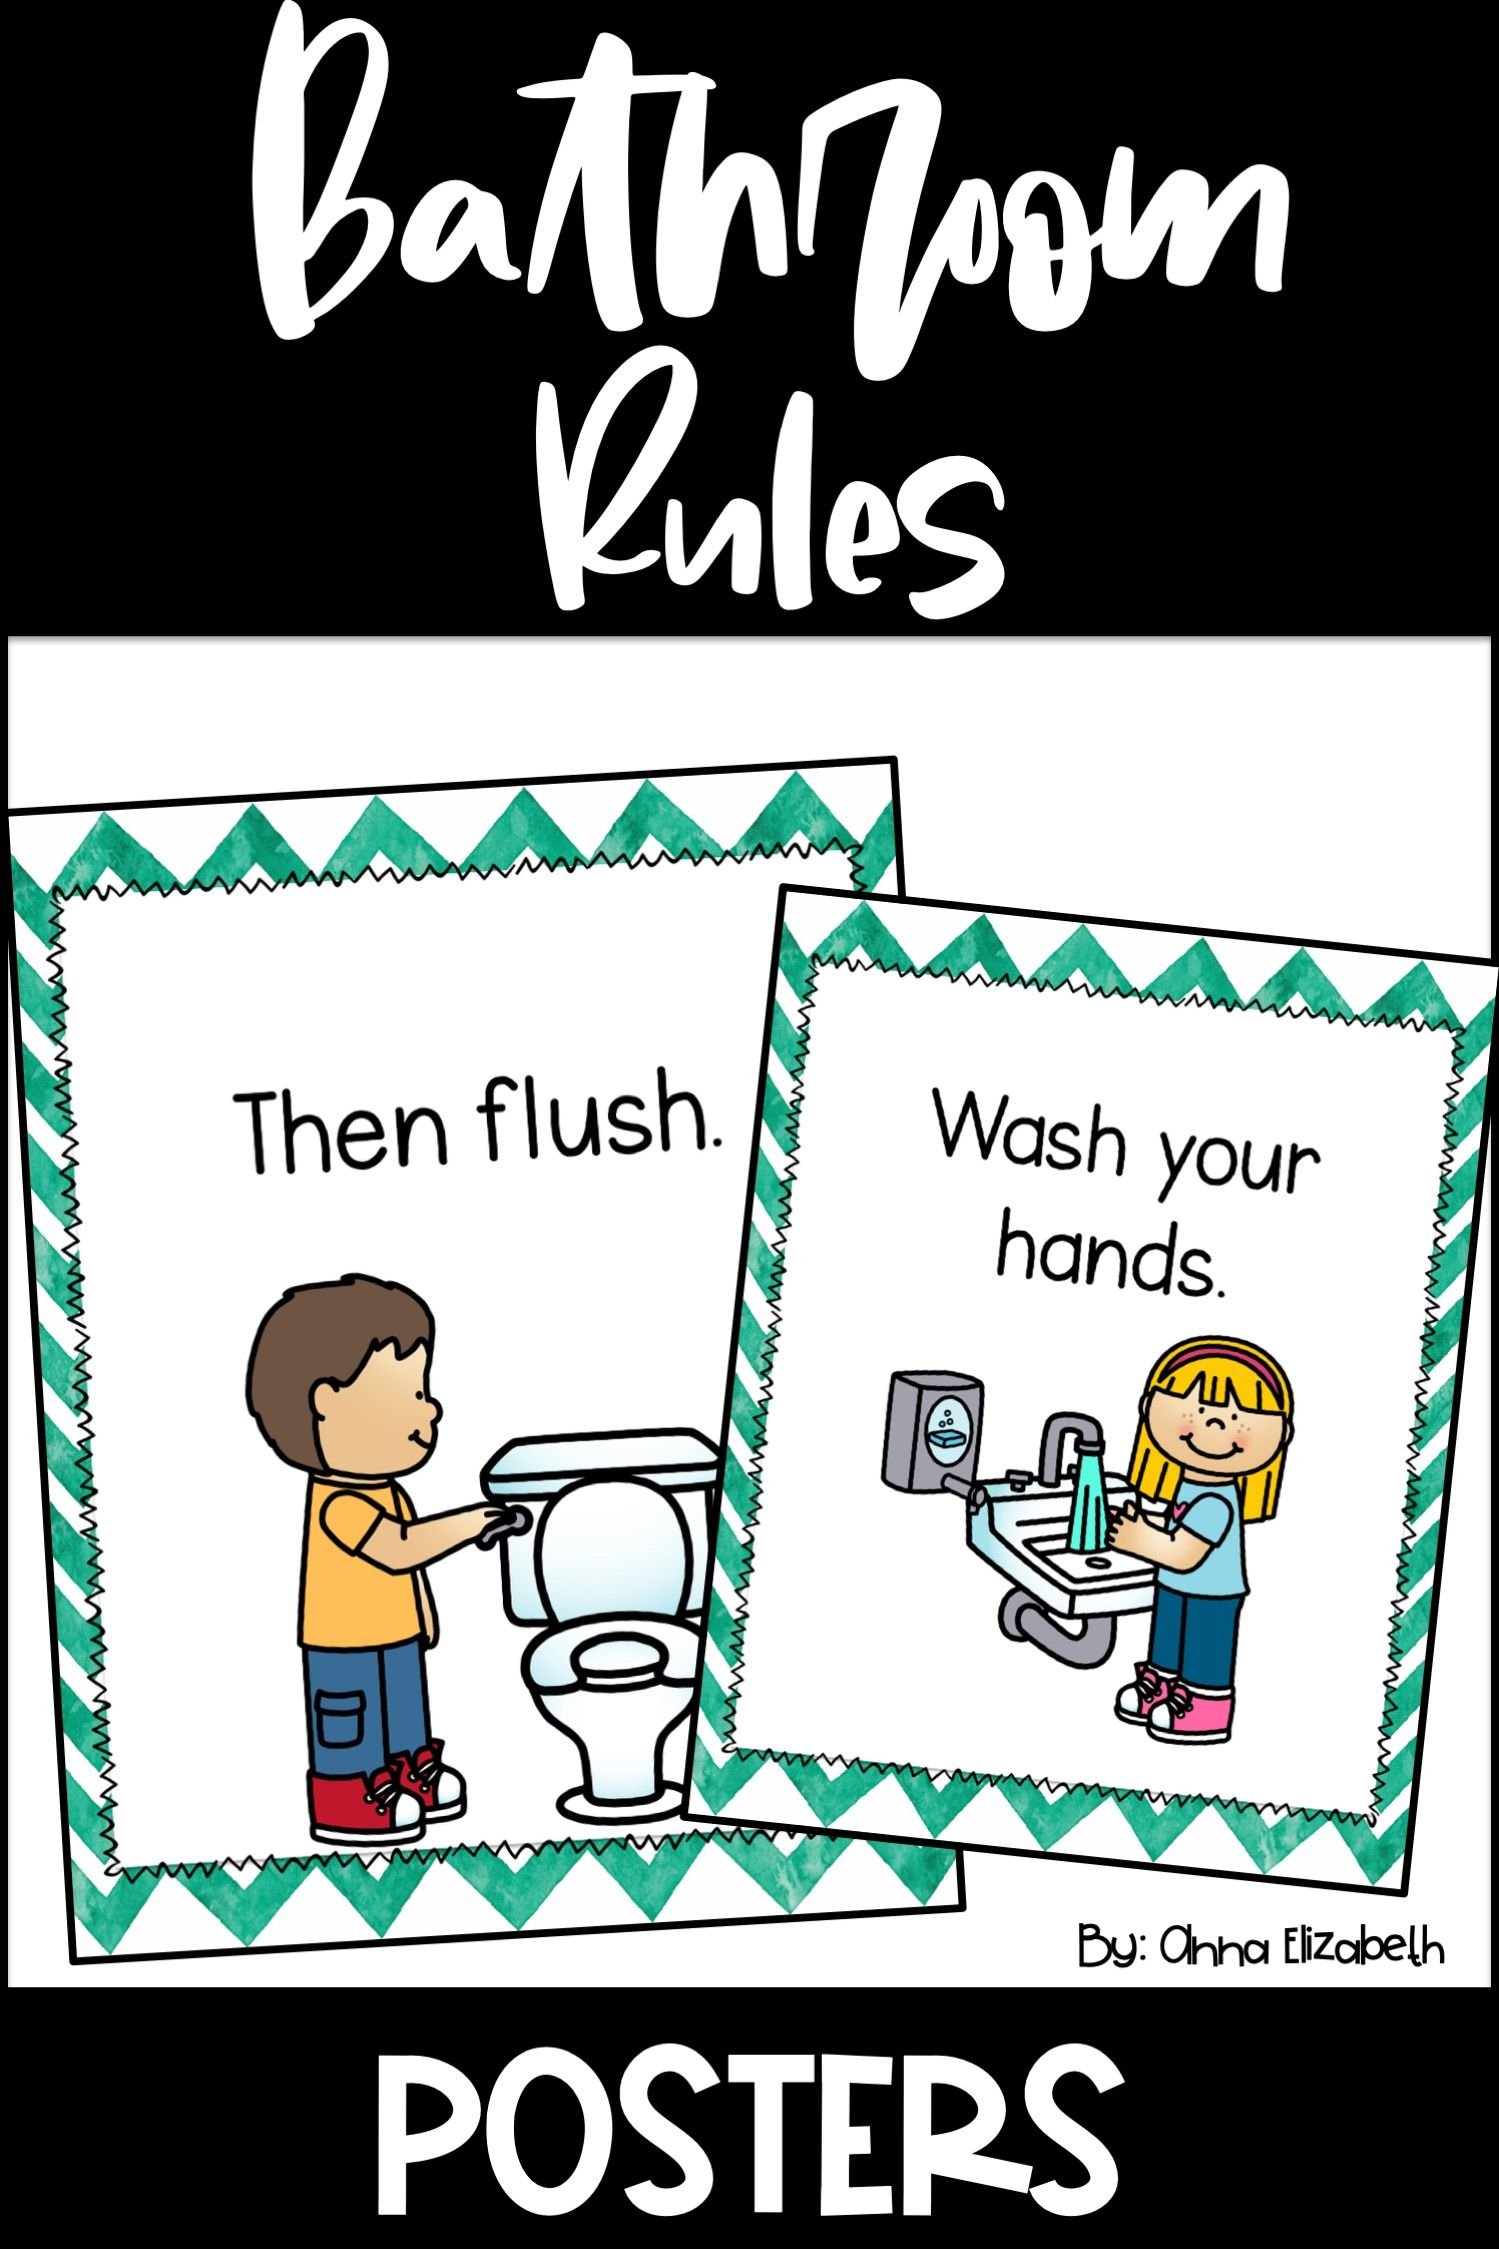 Bathroom Rules Posters | Bathroom rules kids, Bathroom ...